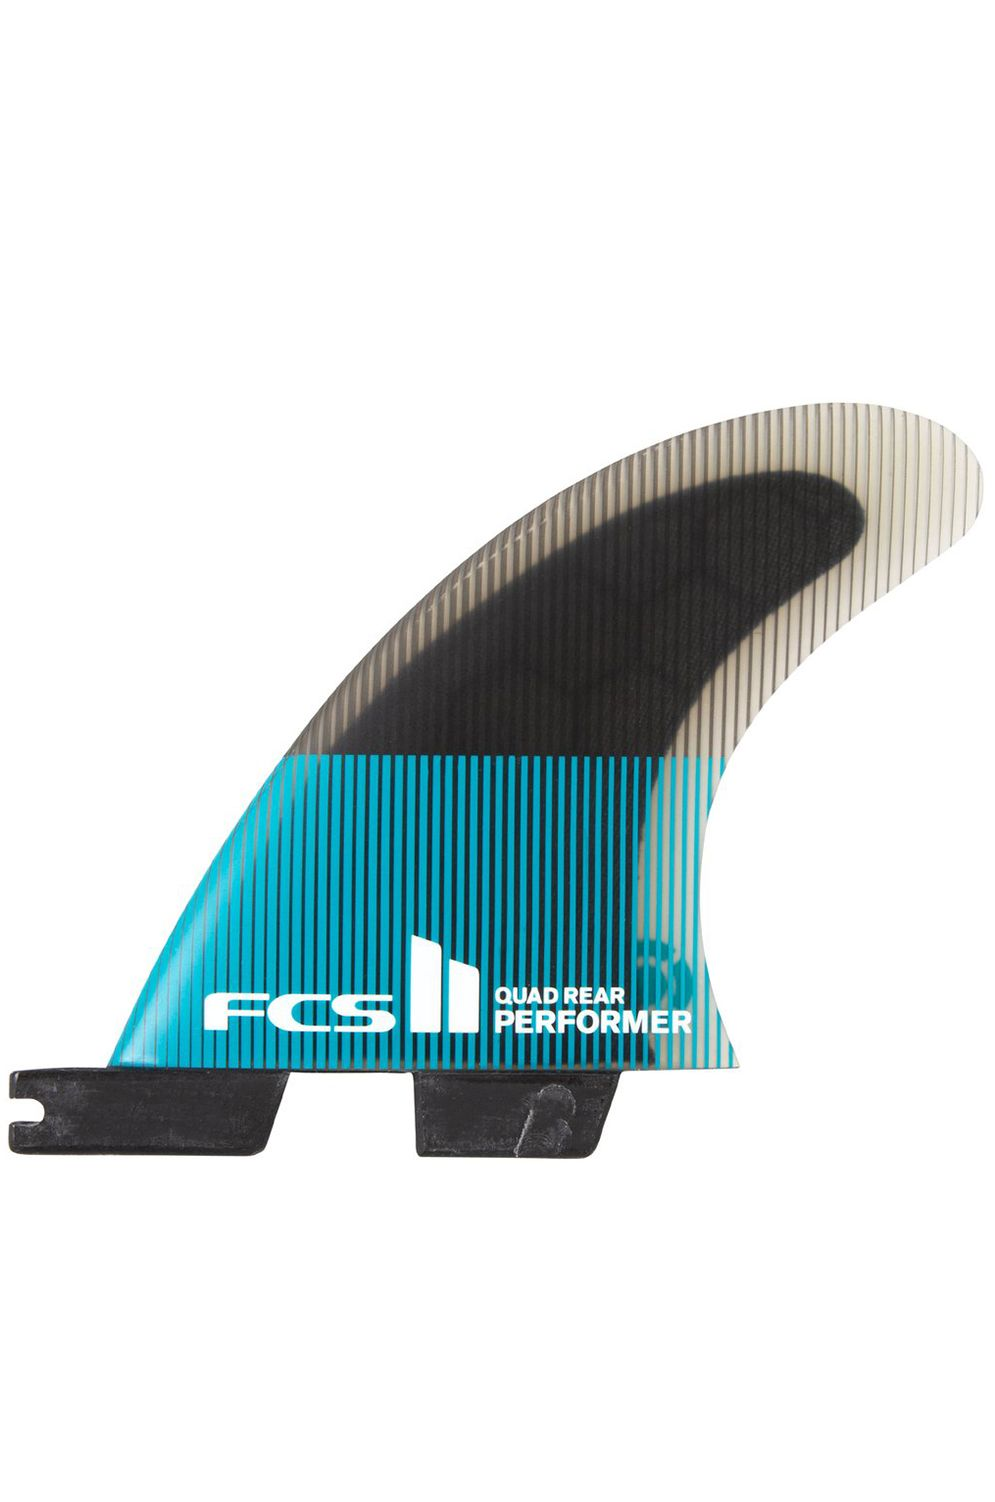 Quilha Fcs II PERFORMER PC SMALL TEAL/BLACK QUAD REAR Quad Rear FCS II S